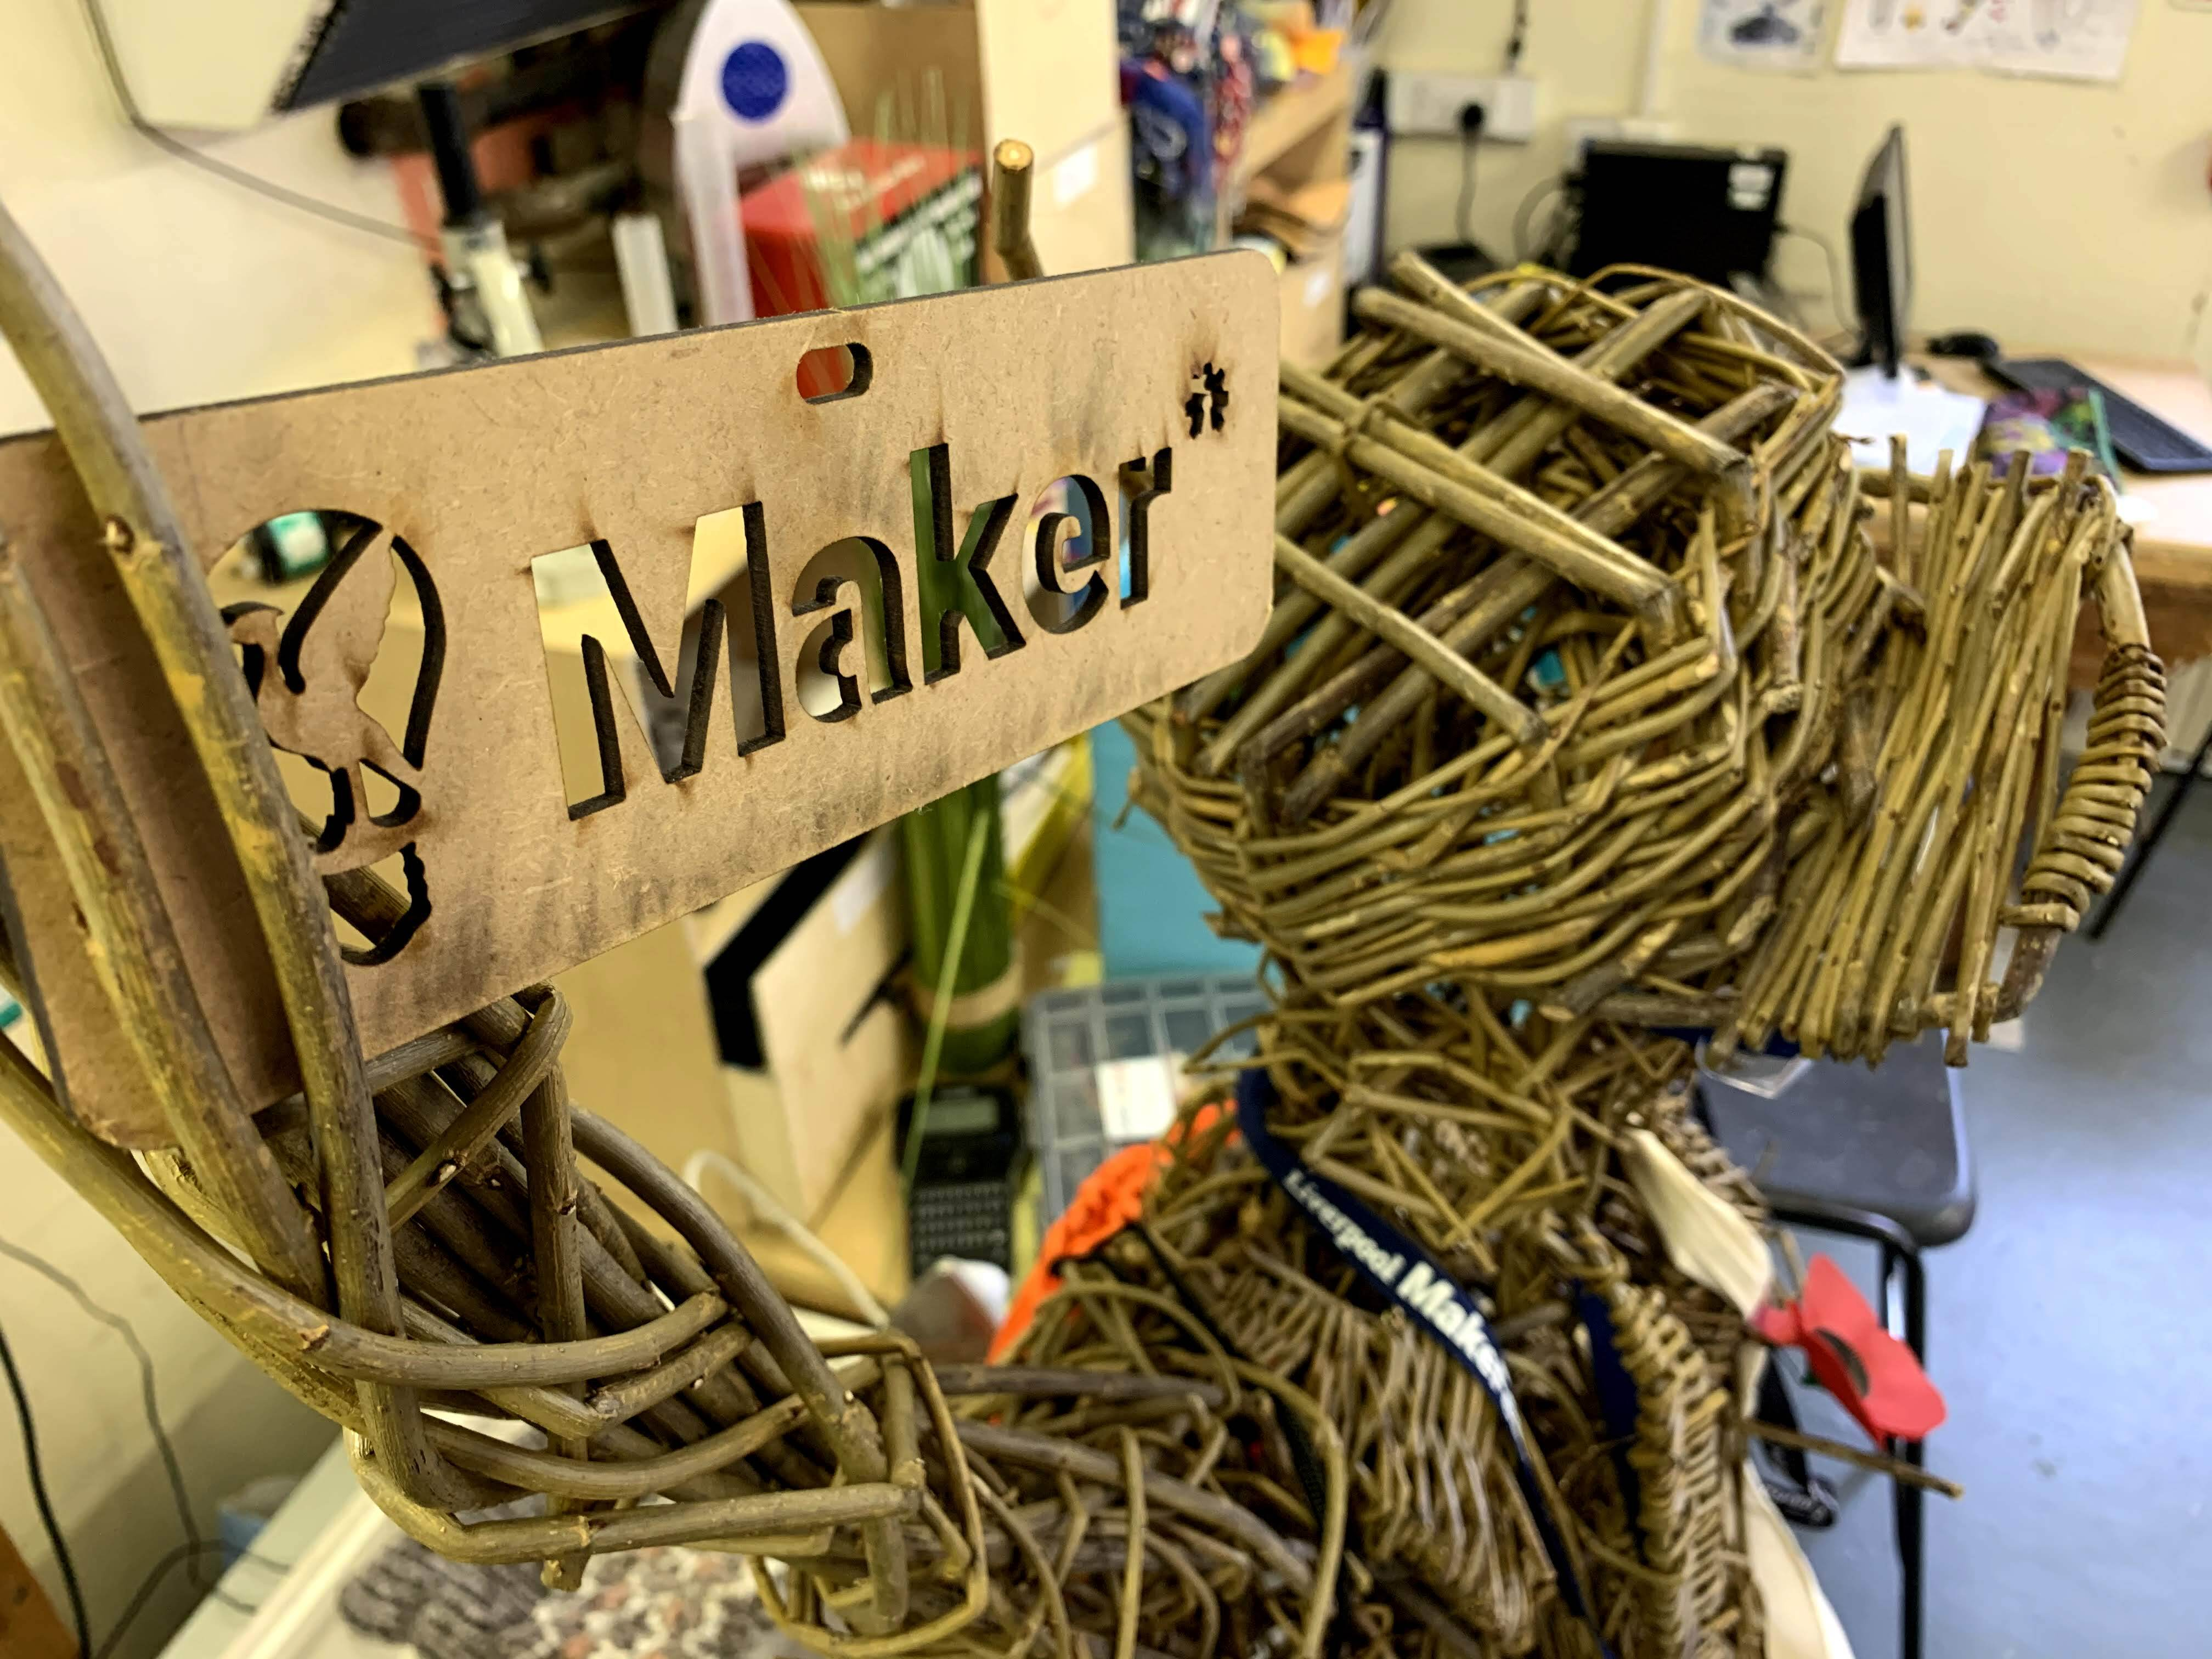 A wicker model of a person with a maker sign